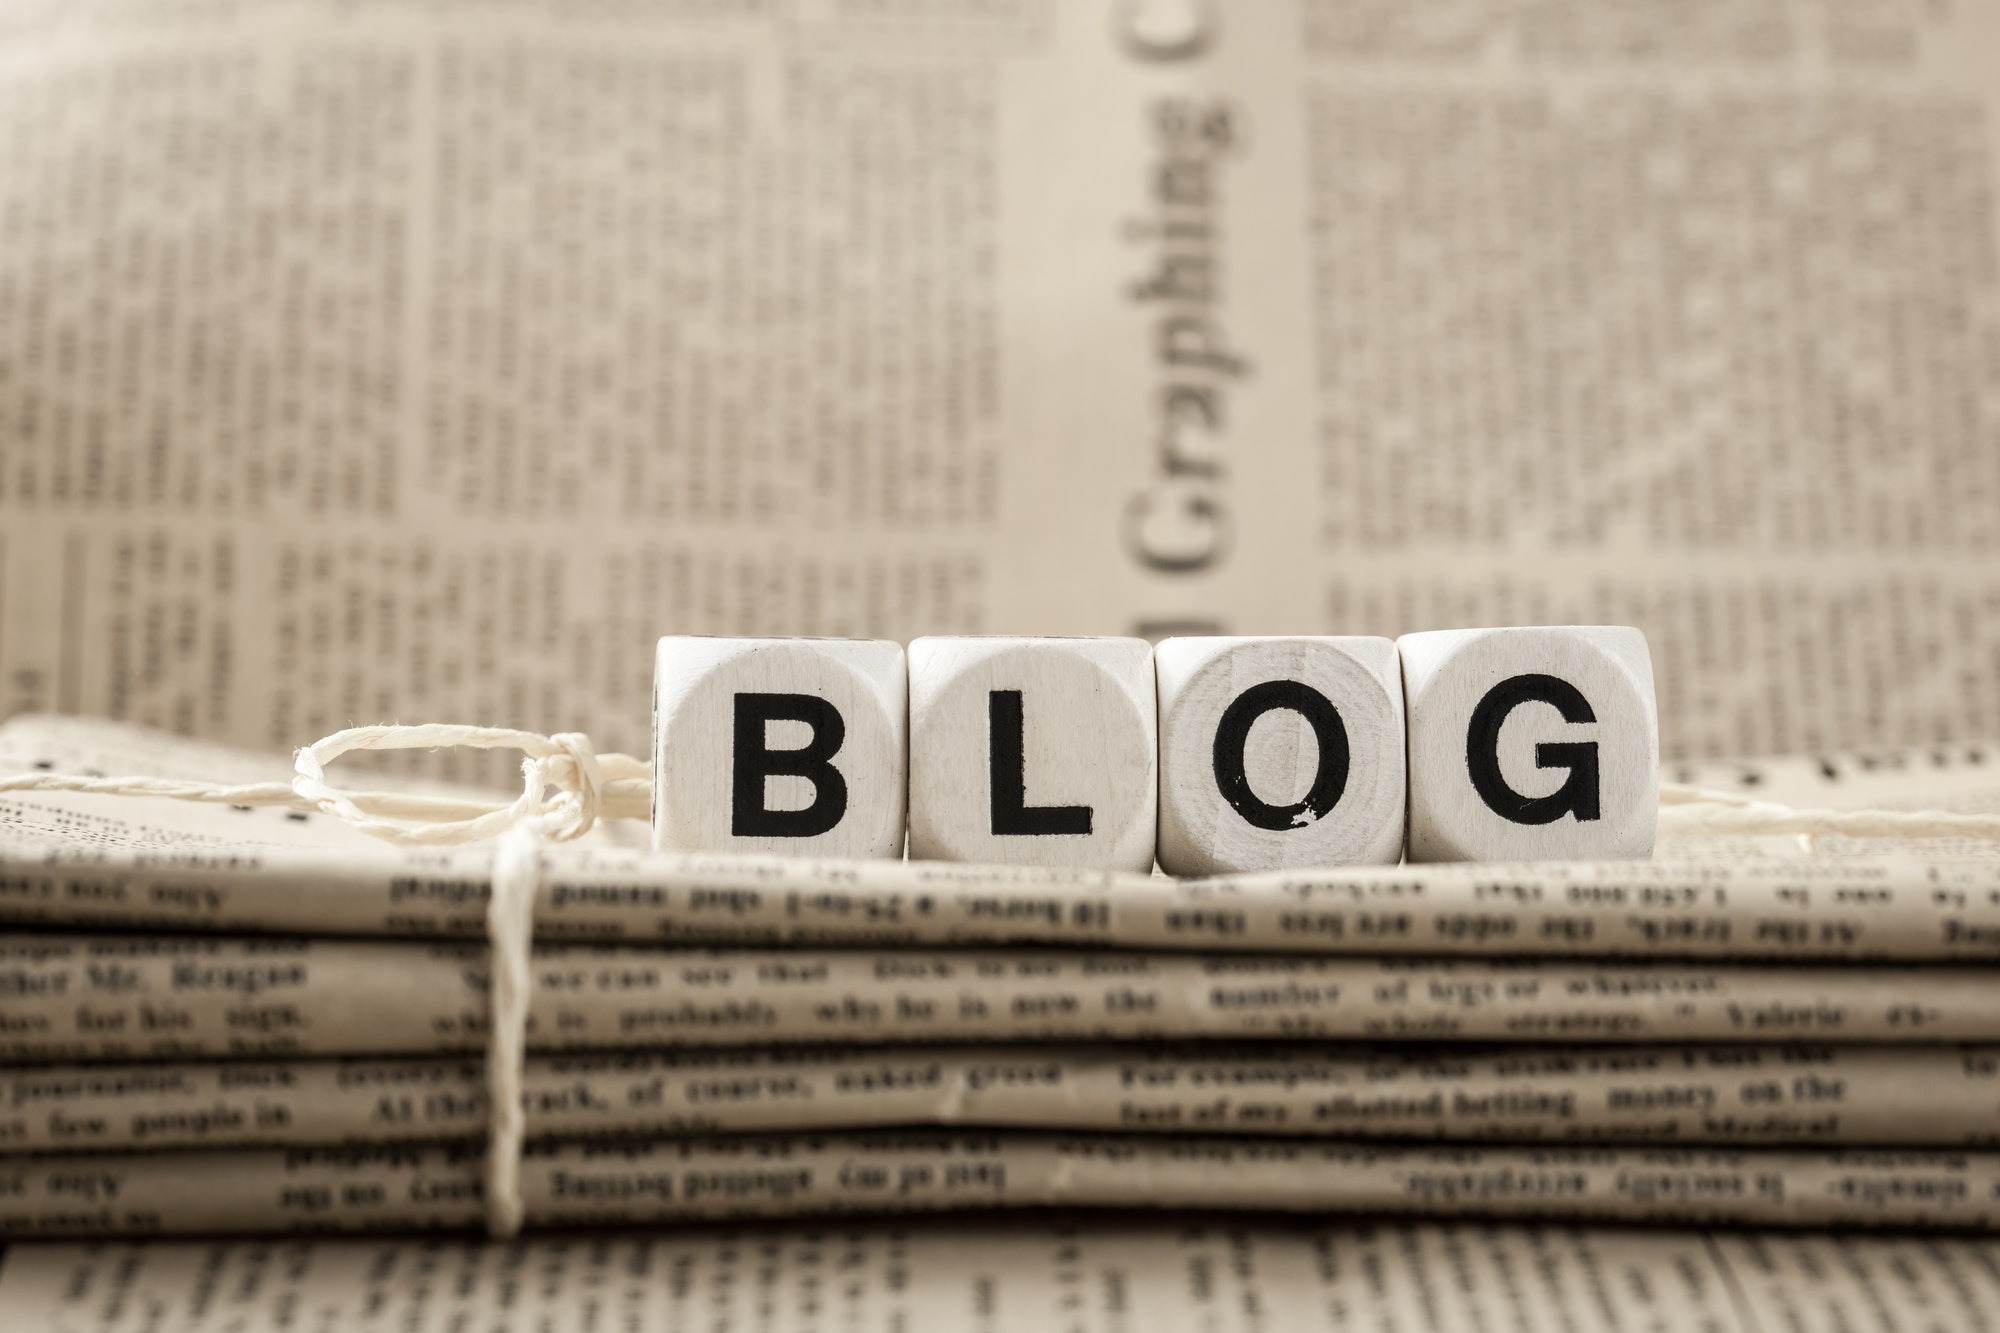 Blog word and newspapers